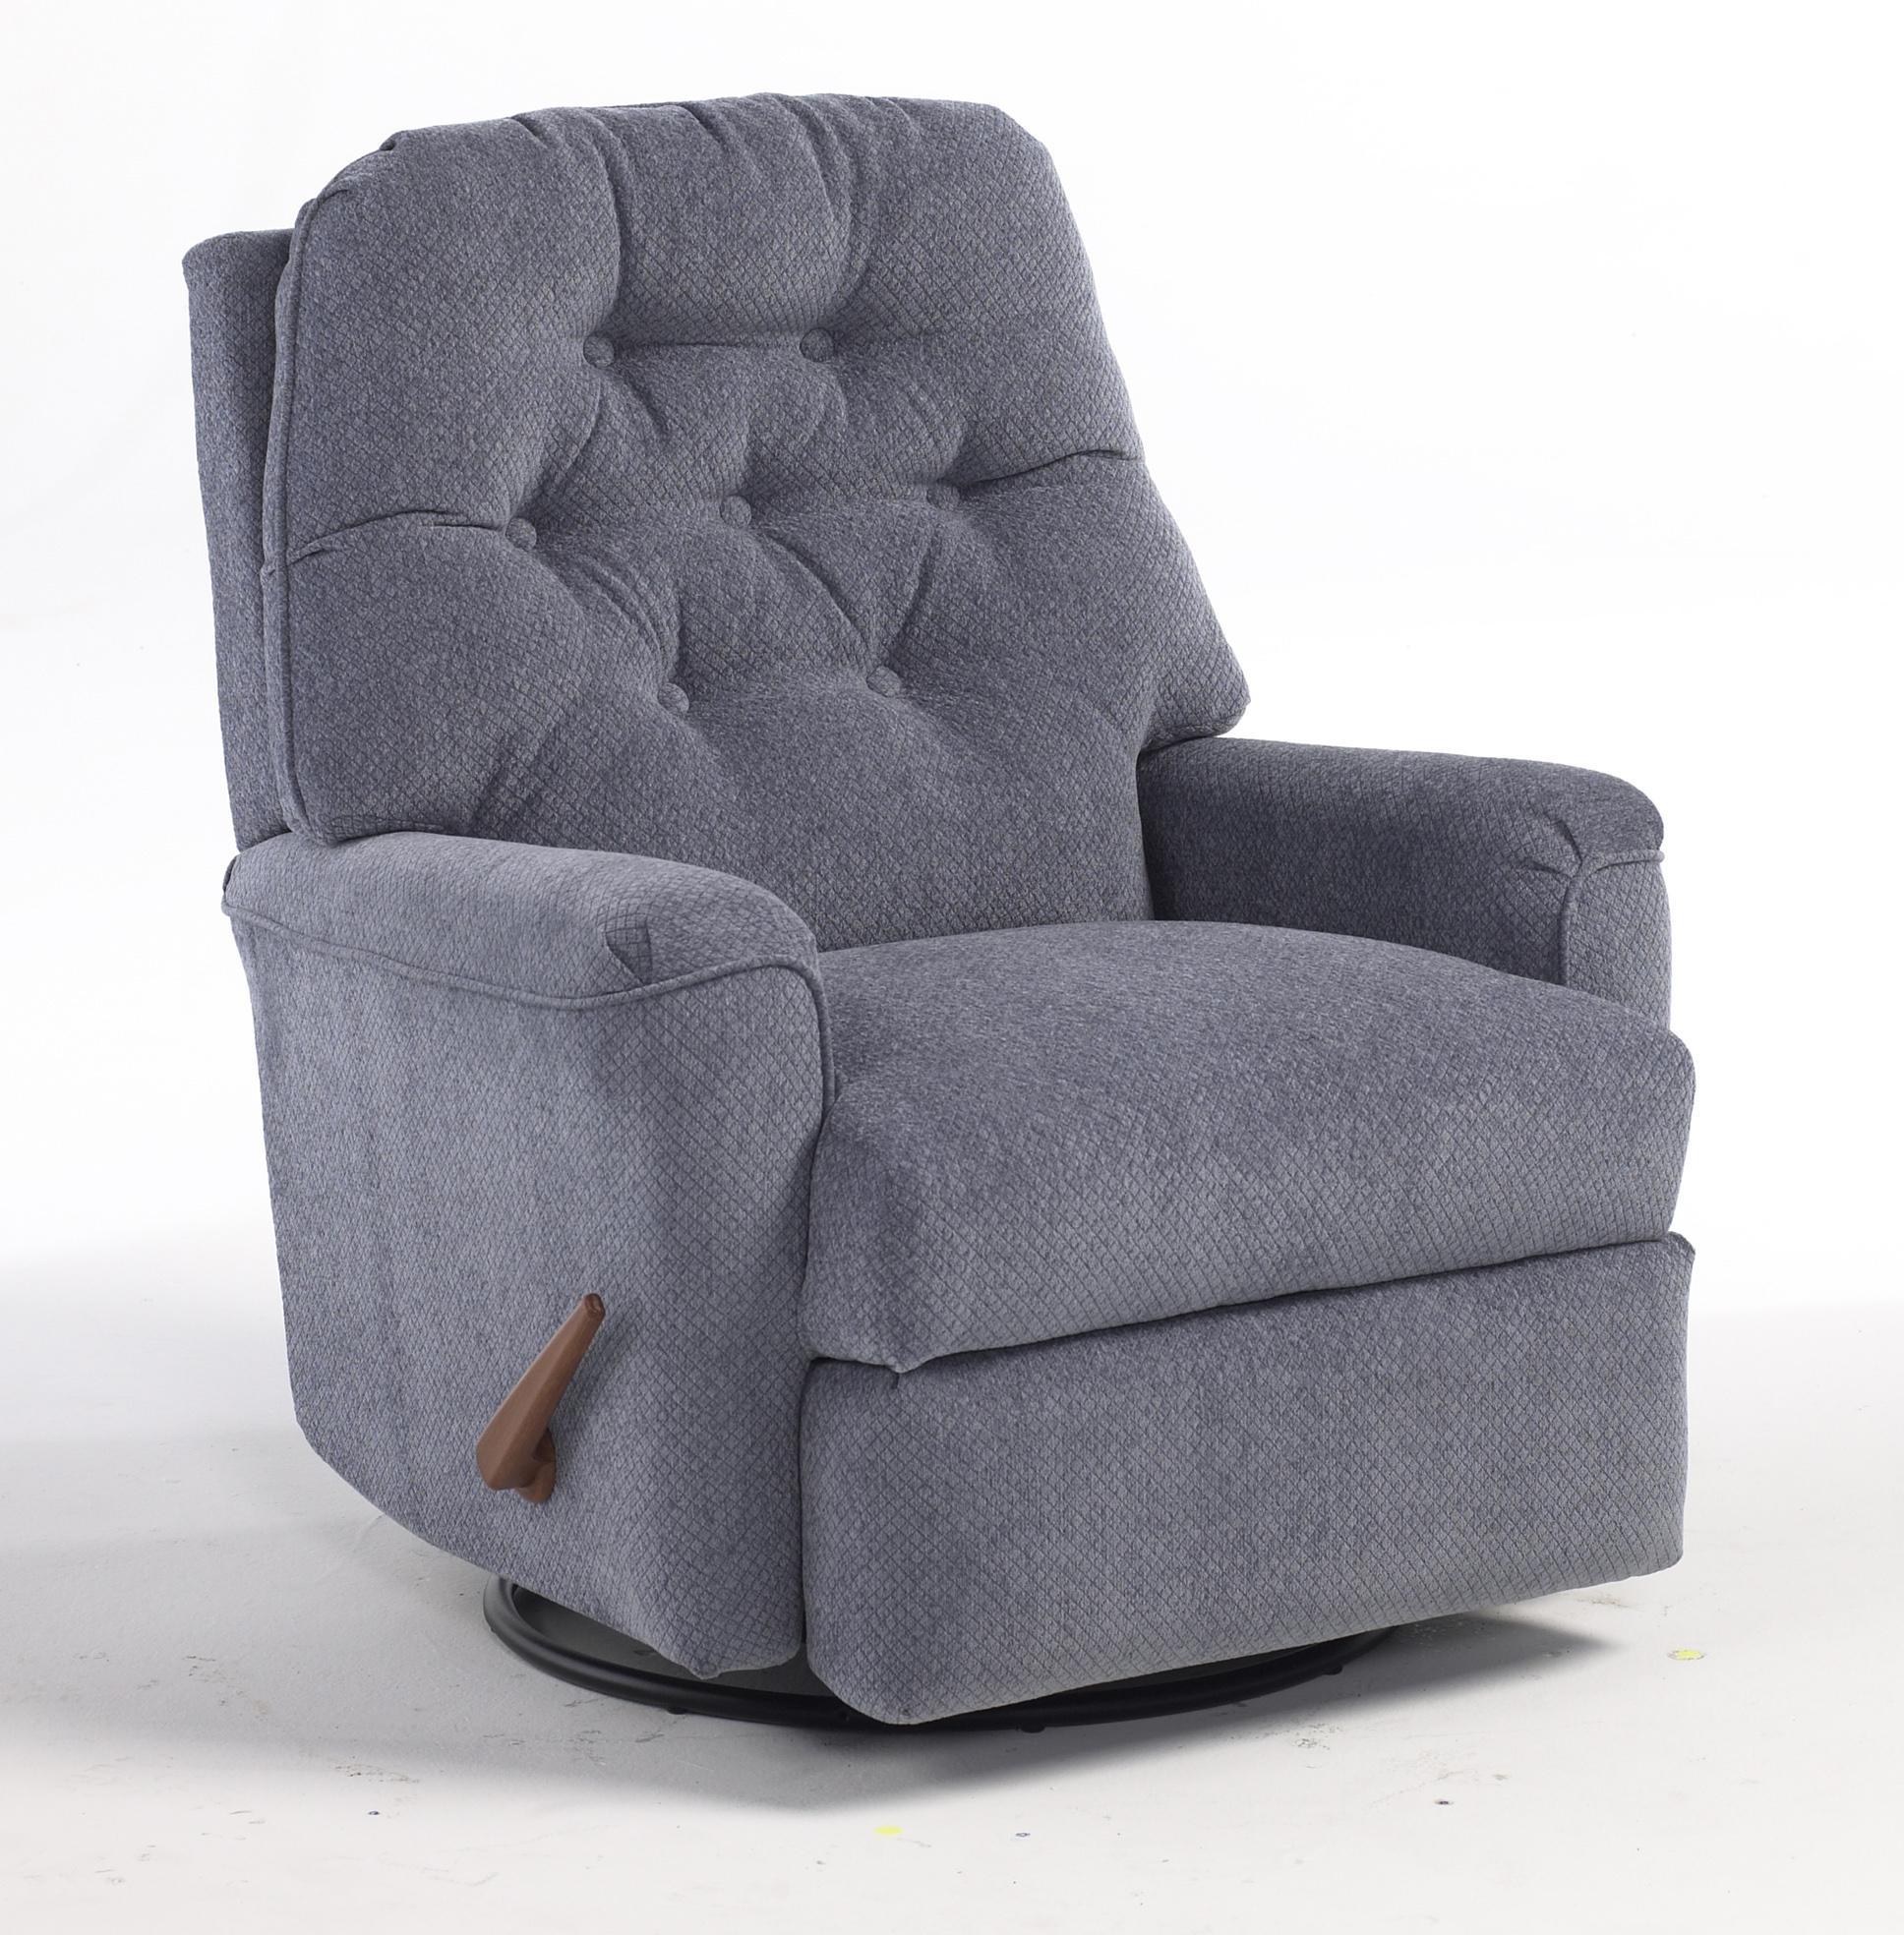 Best Home Furnishings Recliners - Medium Cara Swivel Glider Recliner - Item Number: 1AW45